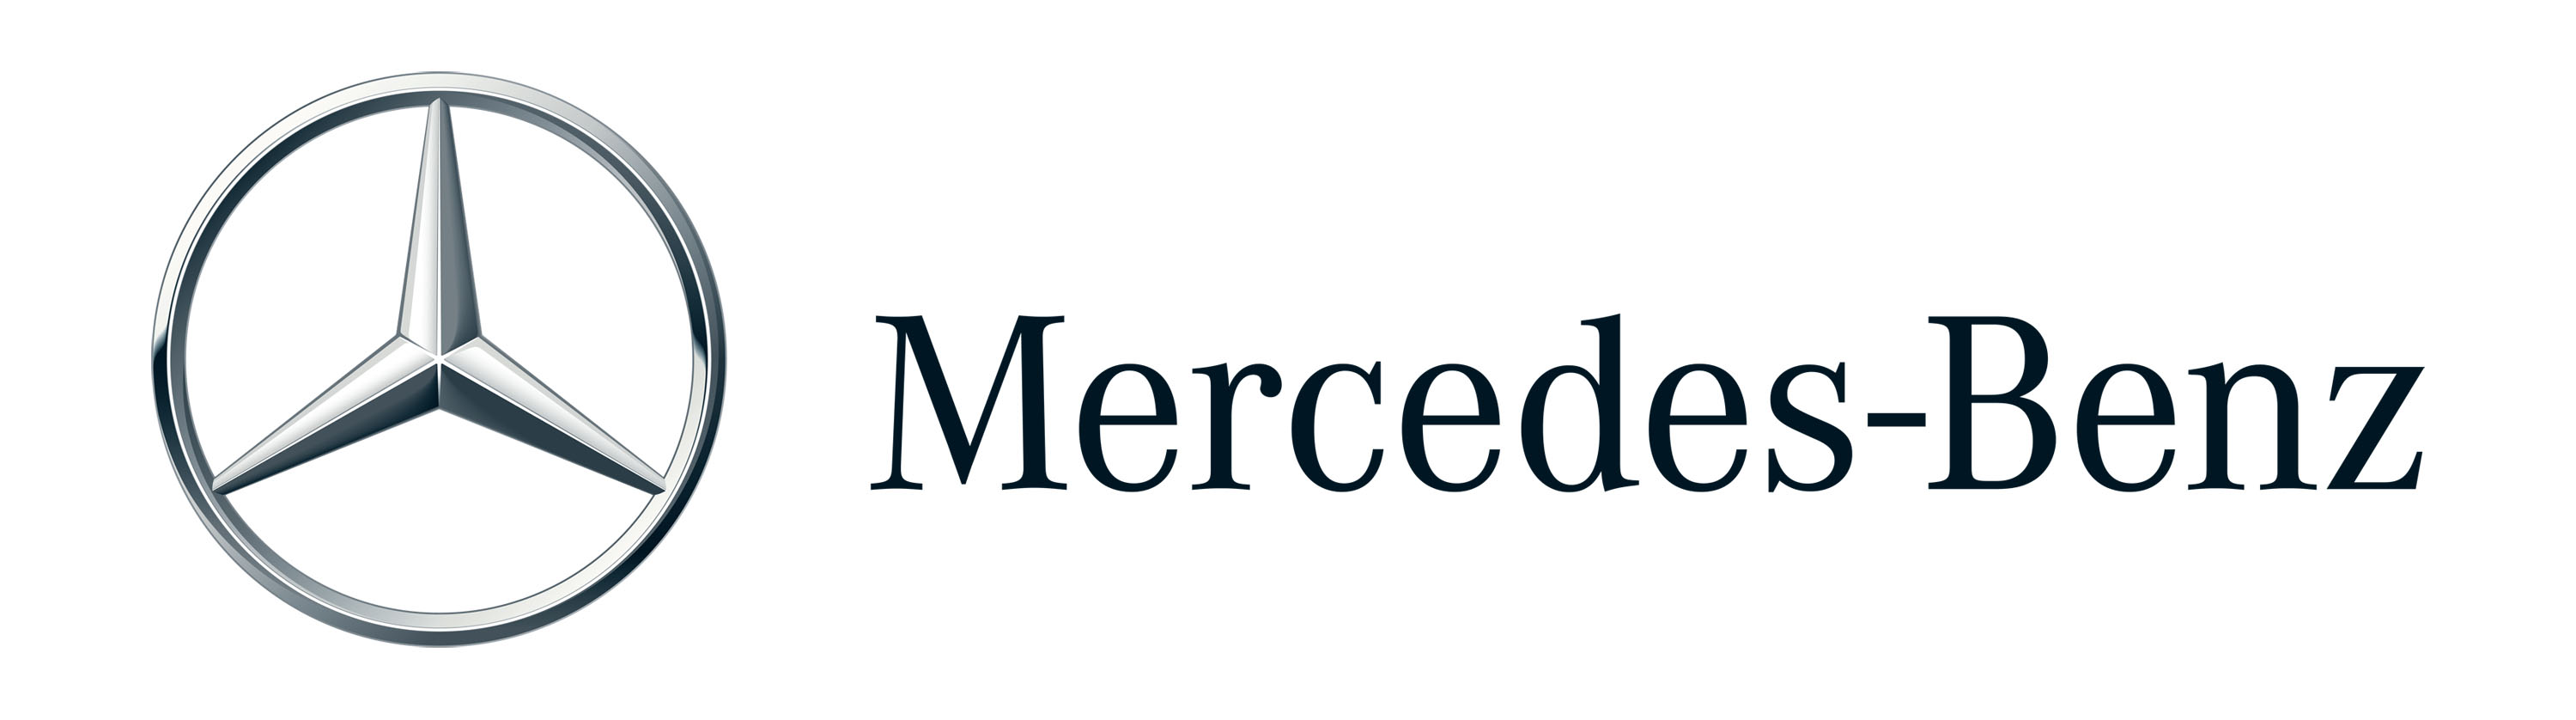 Mercedes benz credit card payment login address for Mercedes benz account